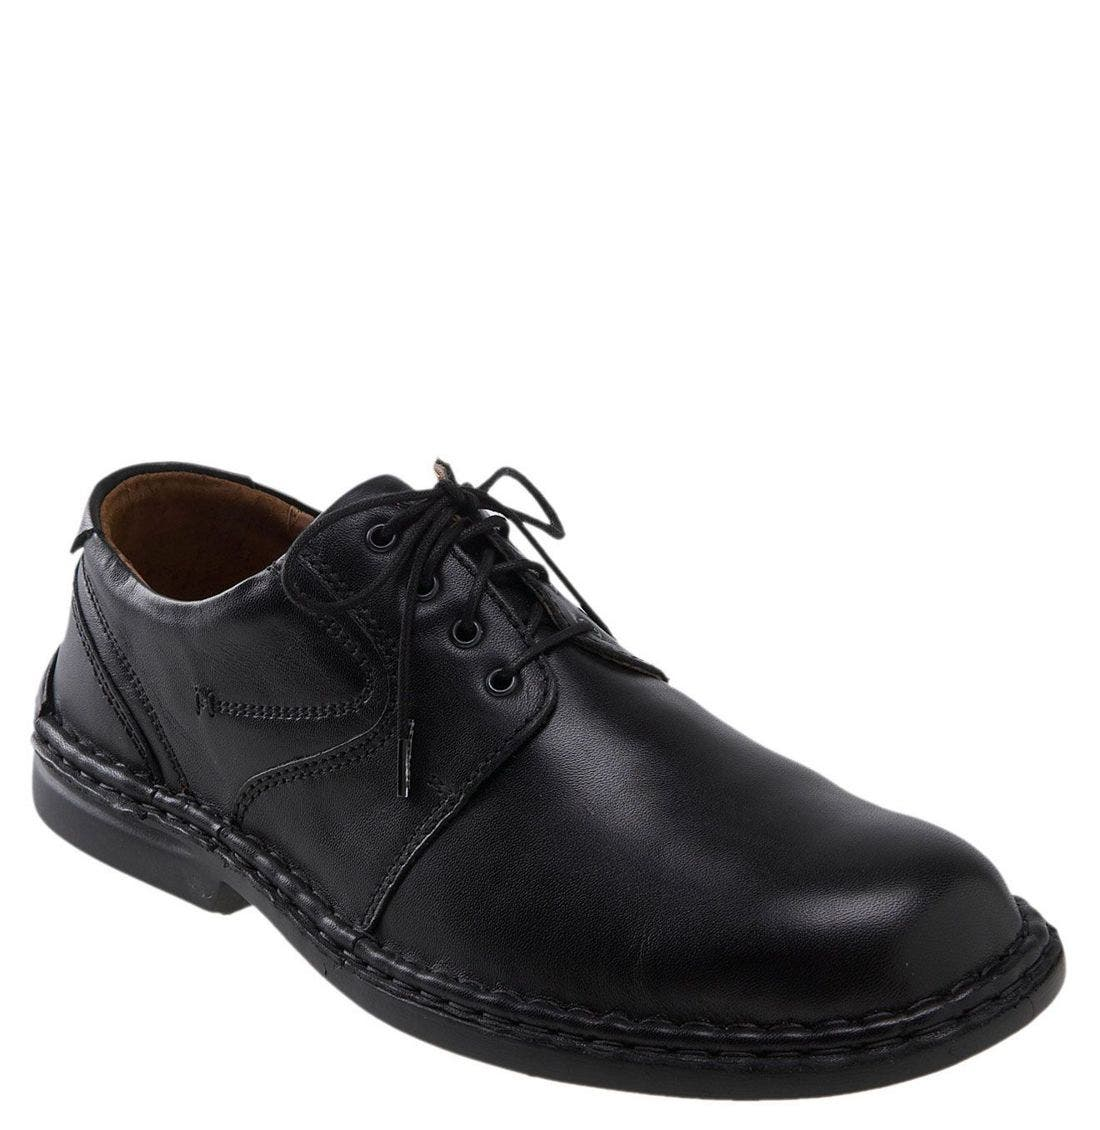 Josef Seibel 'Walt' Casual Oxford